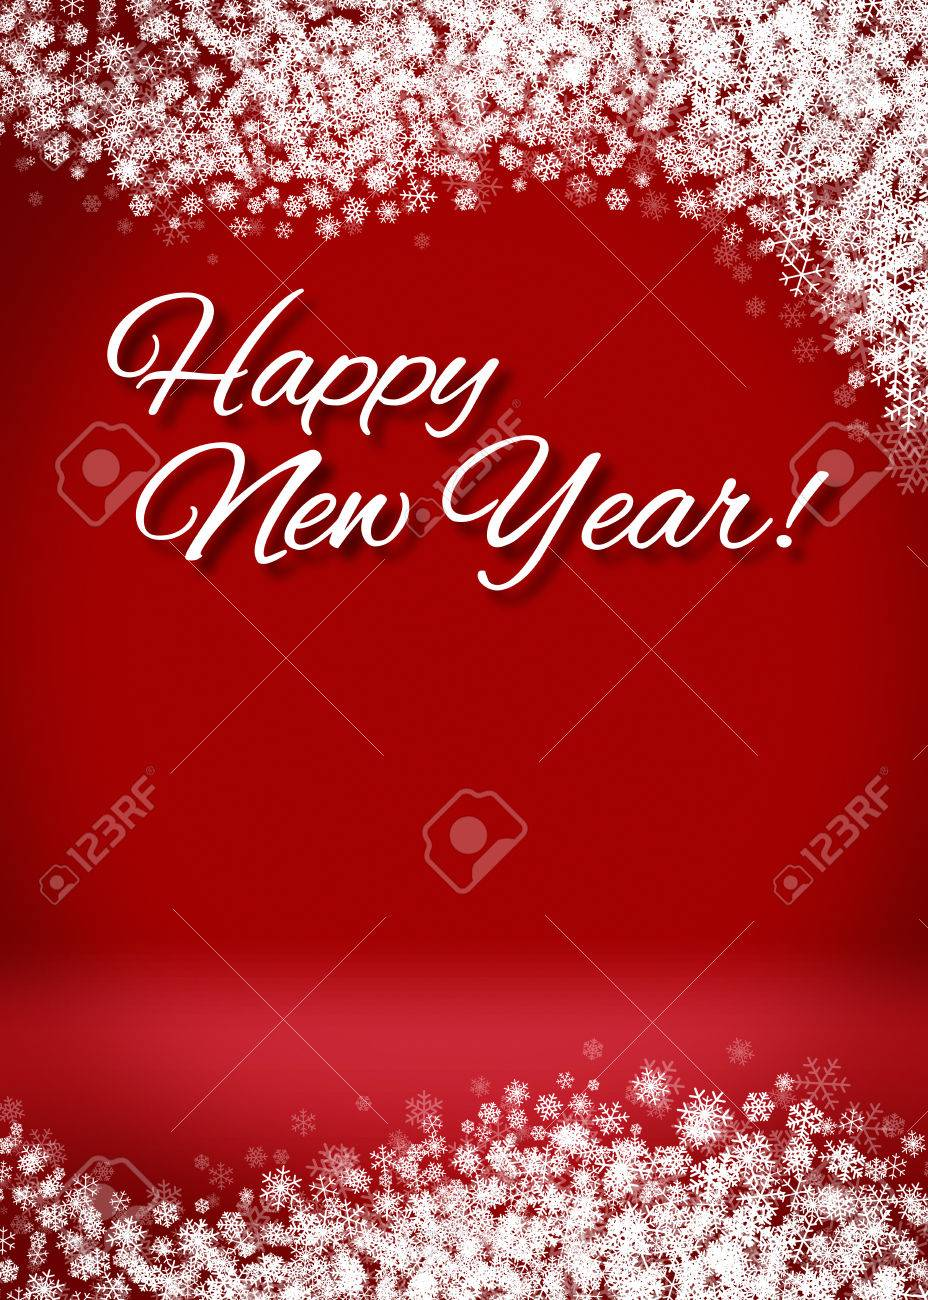 Happy New Year Snowy Blank 3D Greeting Card Background Template – New Year Greeting Card Template